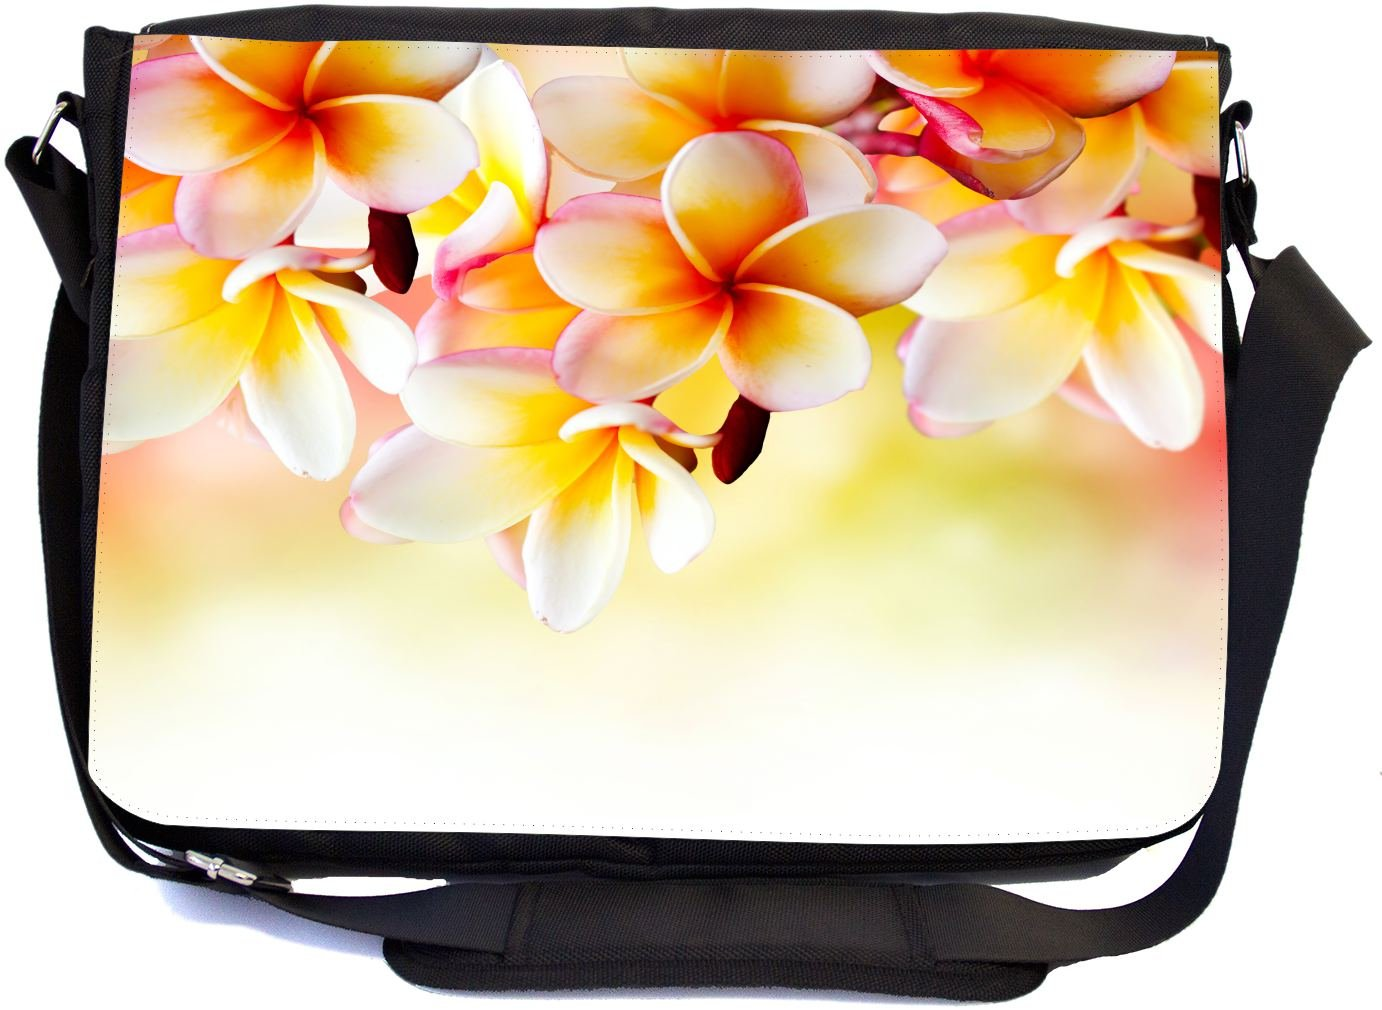 Rikki Knight Frangipani Tropical Spa Flower Design Multifunctional Messenger Bag - School Bag - Laptop Bag - with Padded Insert for School or Work - Includes Matching Compact Mirror